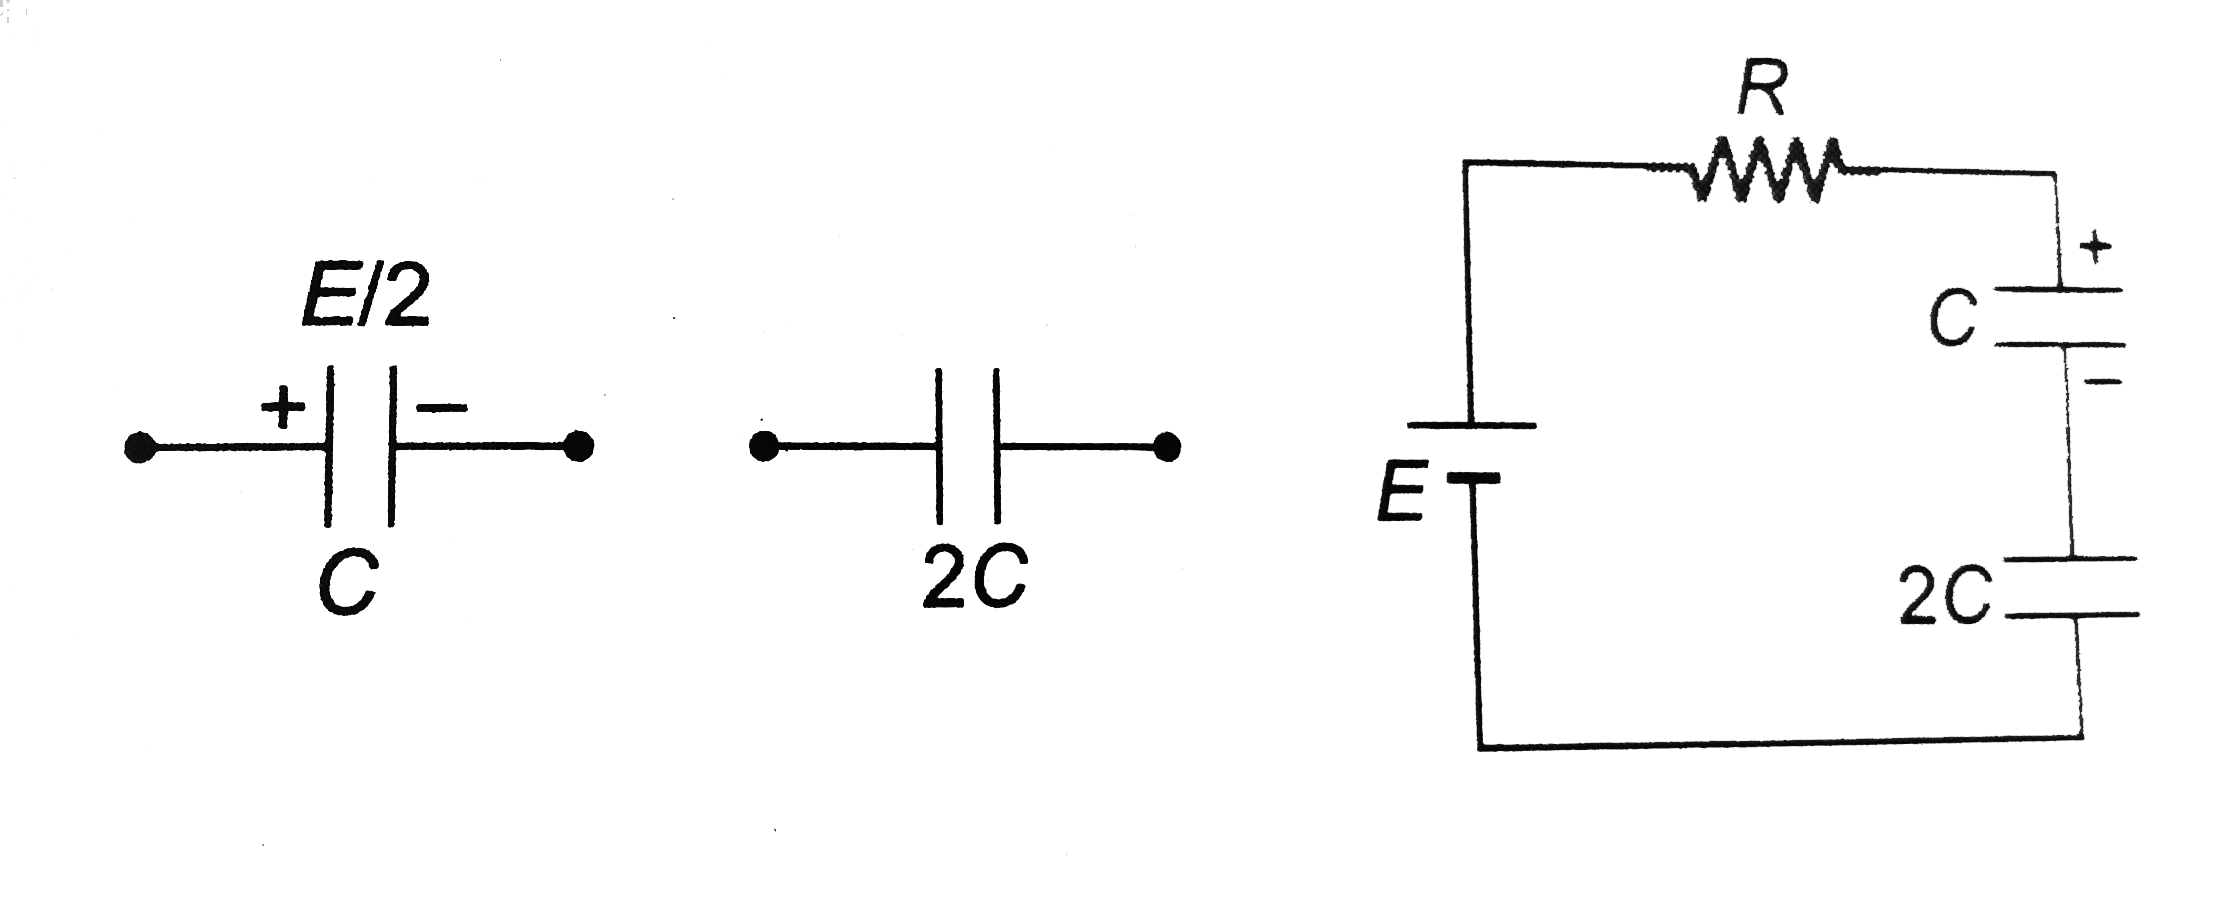 A capacitor of capacitance C has potential difference E/2